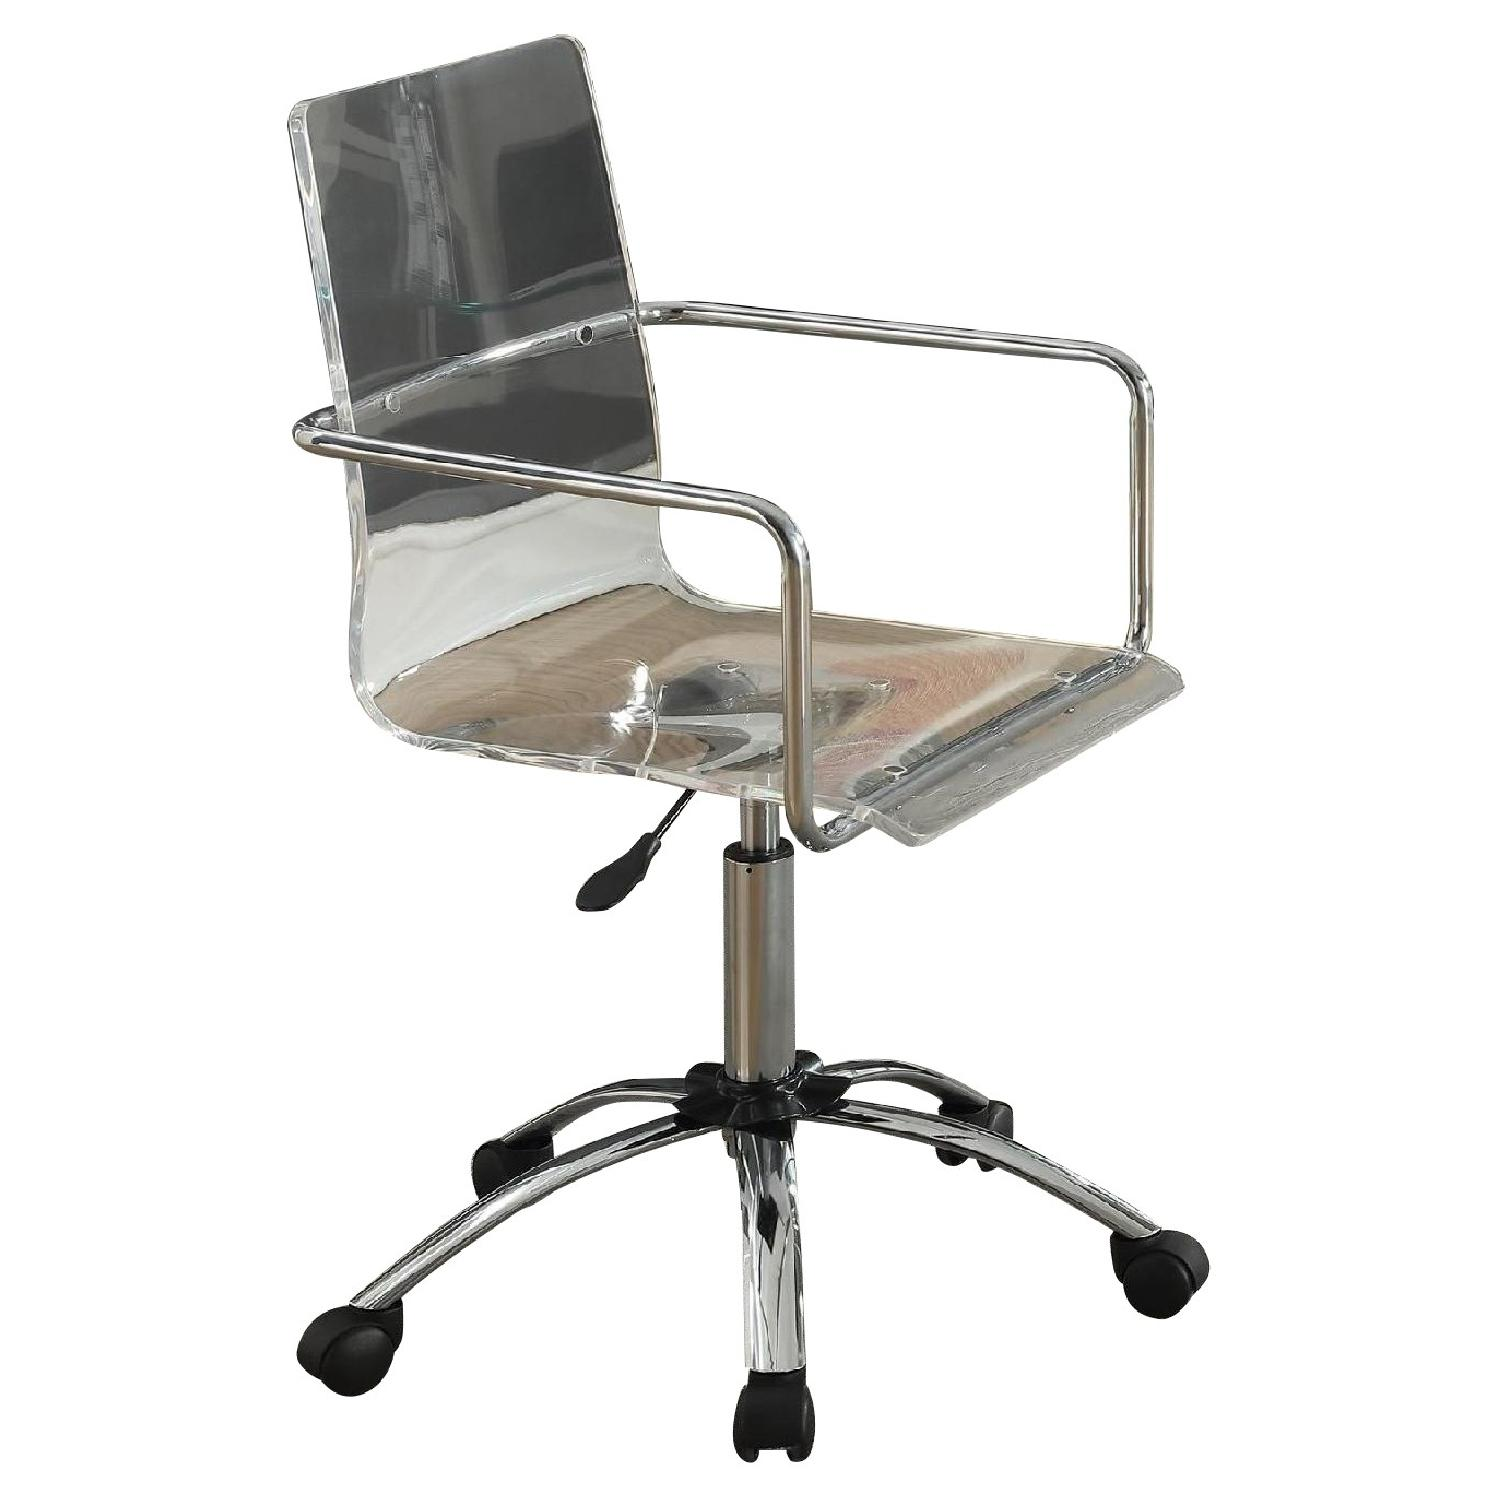 Height Adjustable Office Chair w/ Clear Acrylic Seat & Chromed Steel Frame